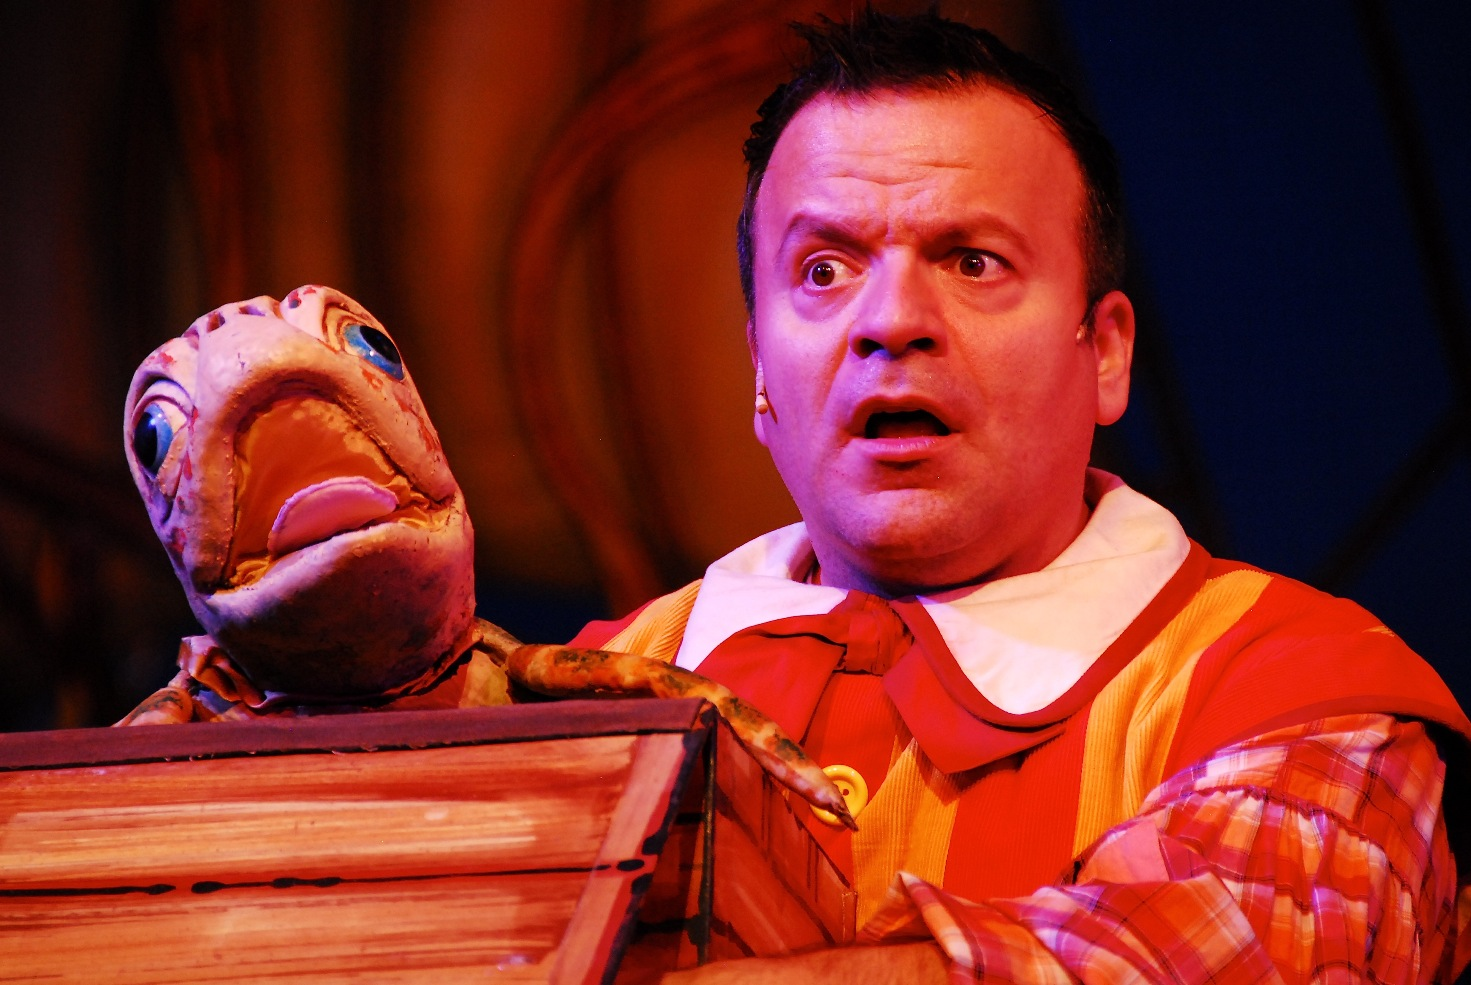 Kev Orkian as Idle Jack in Dick Whittington